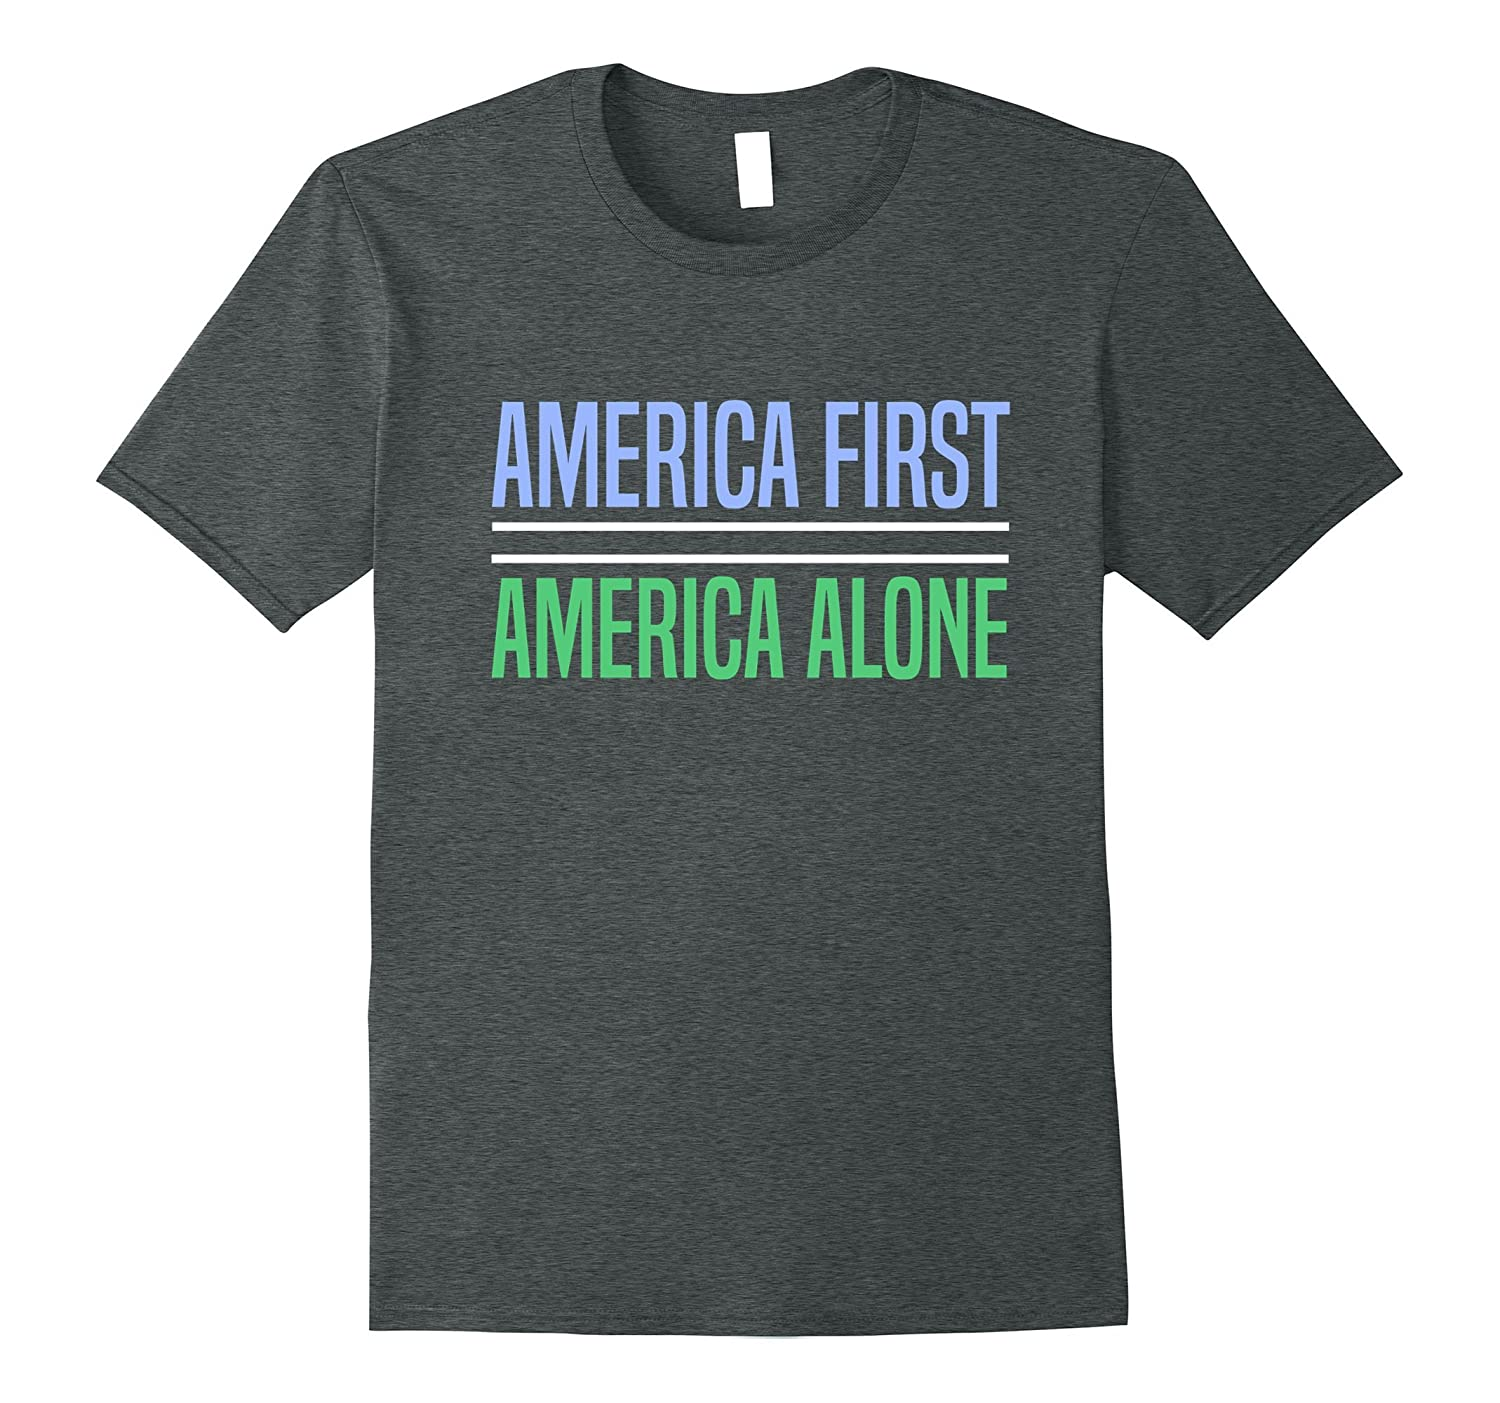 America First Equals America Alone Bad Trump Policy T-Shirt